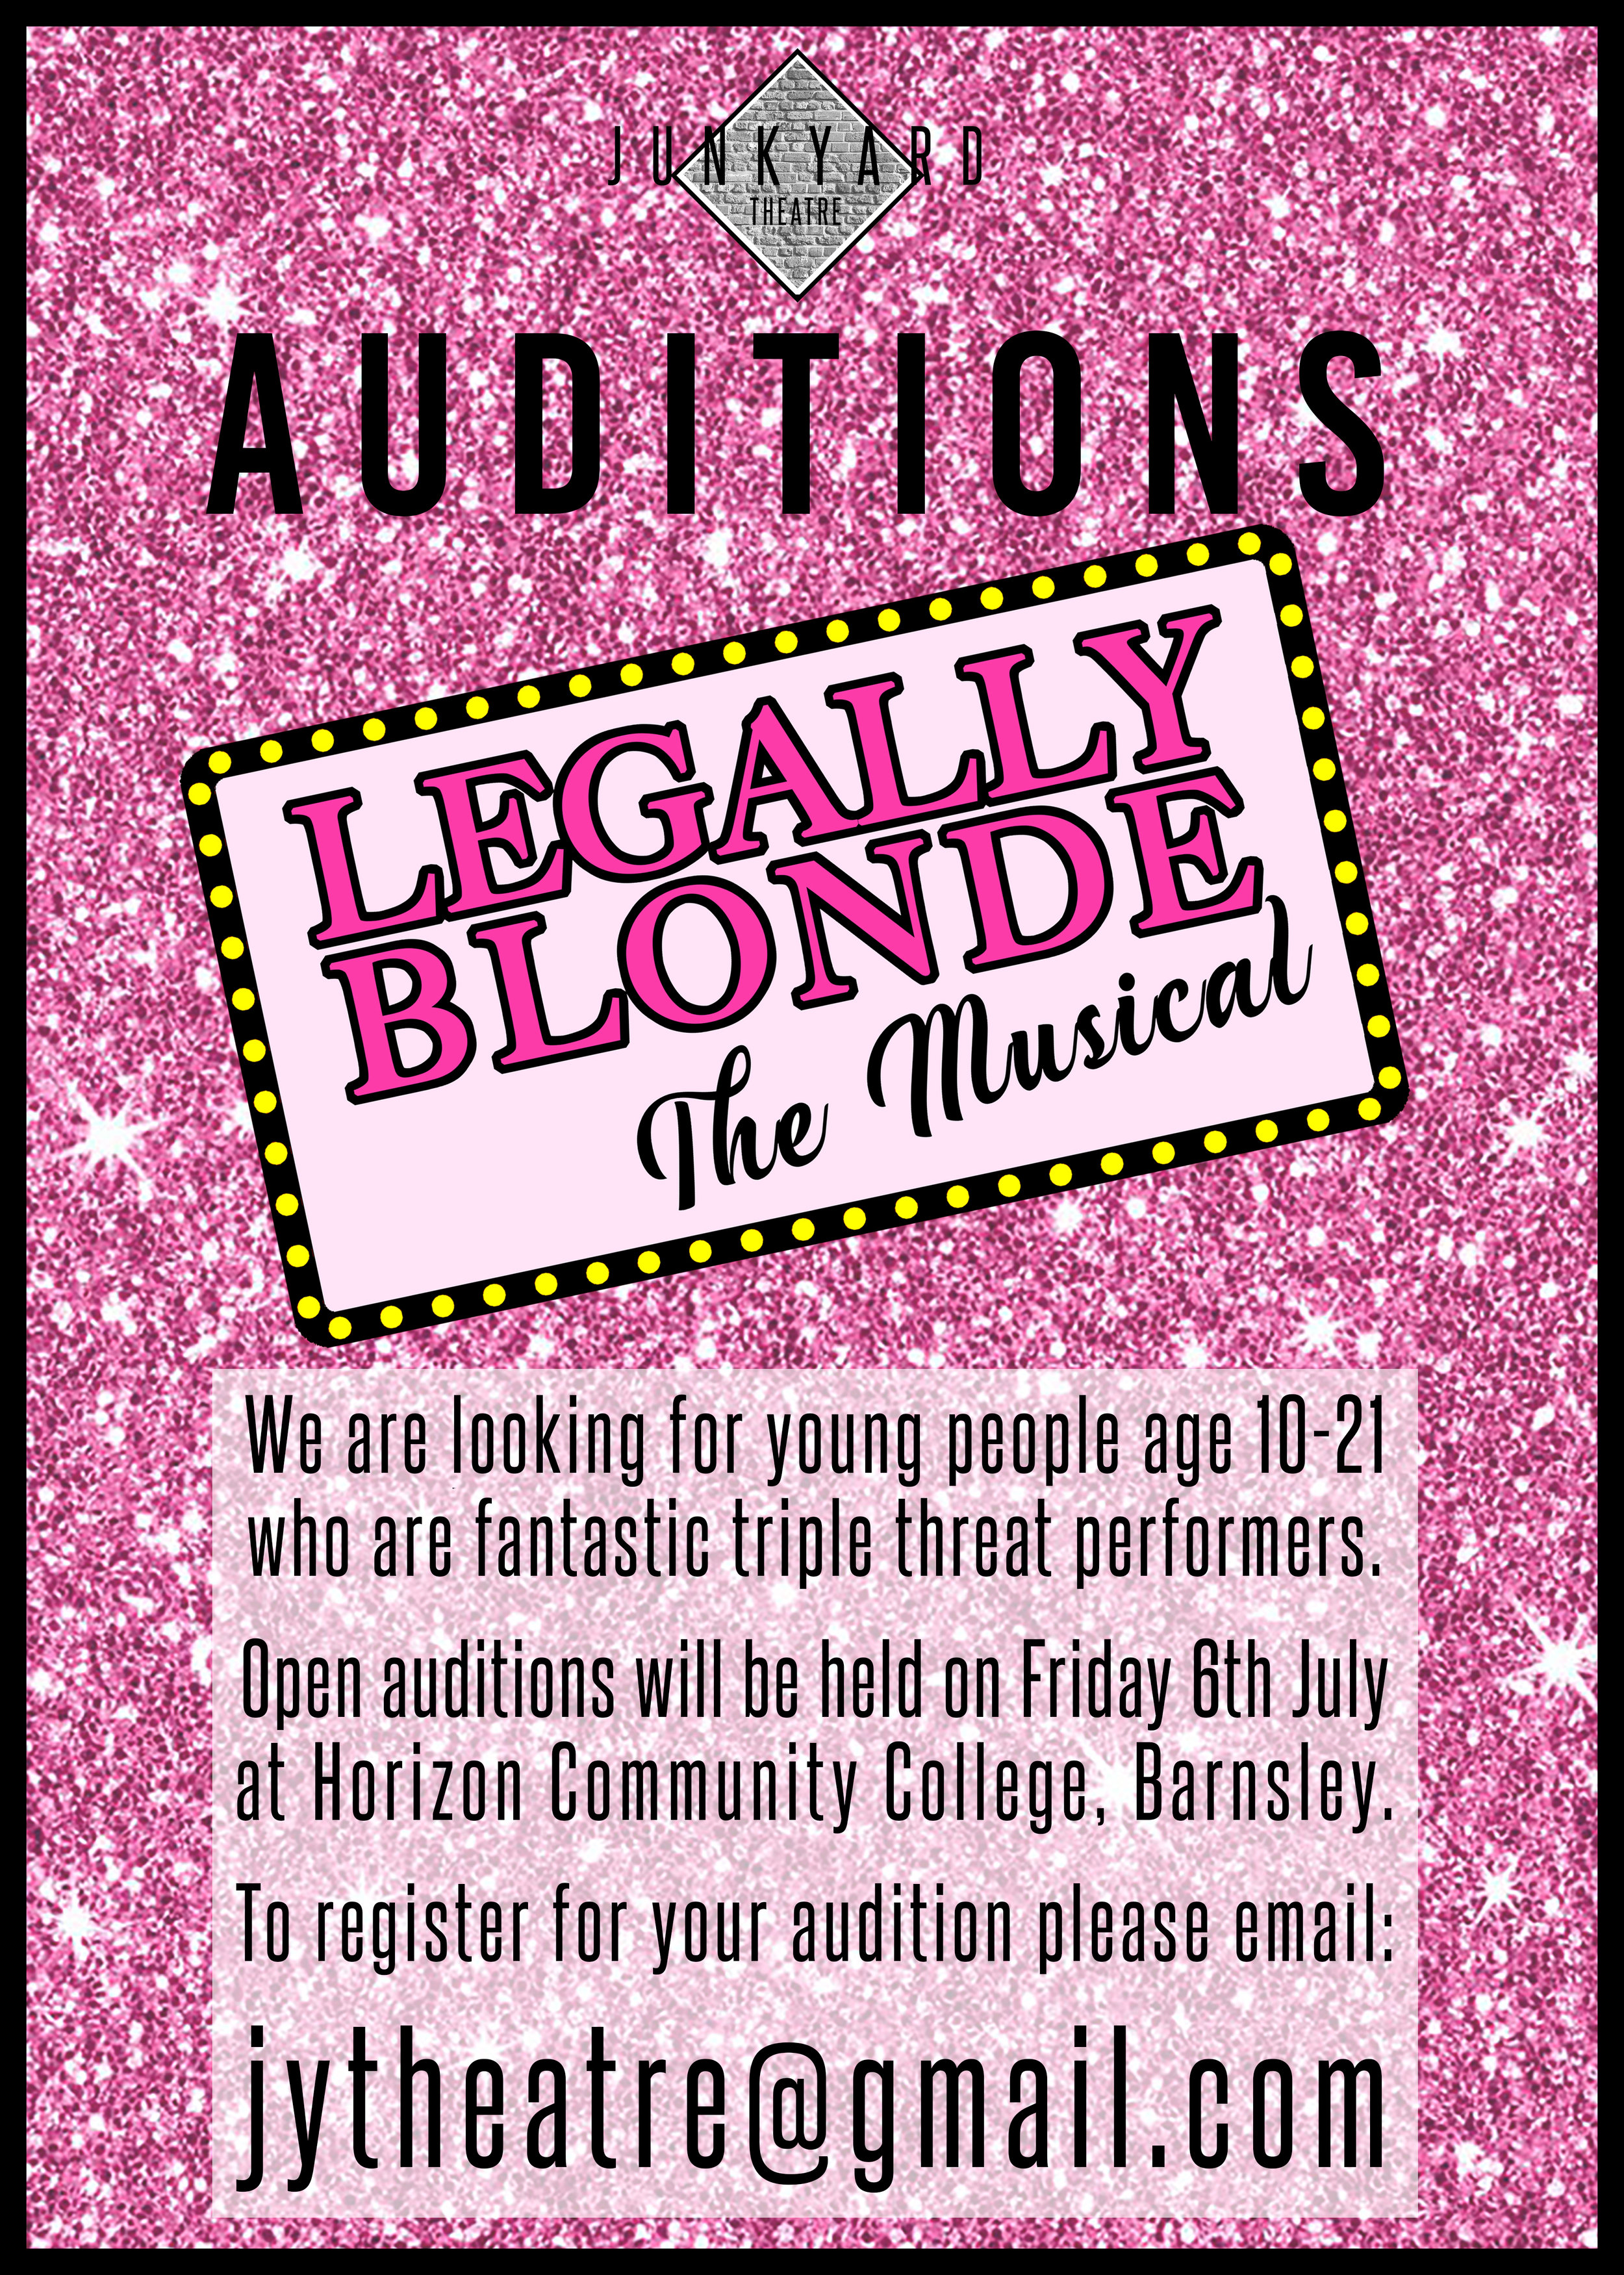 legally blonde auditions poster.jpg